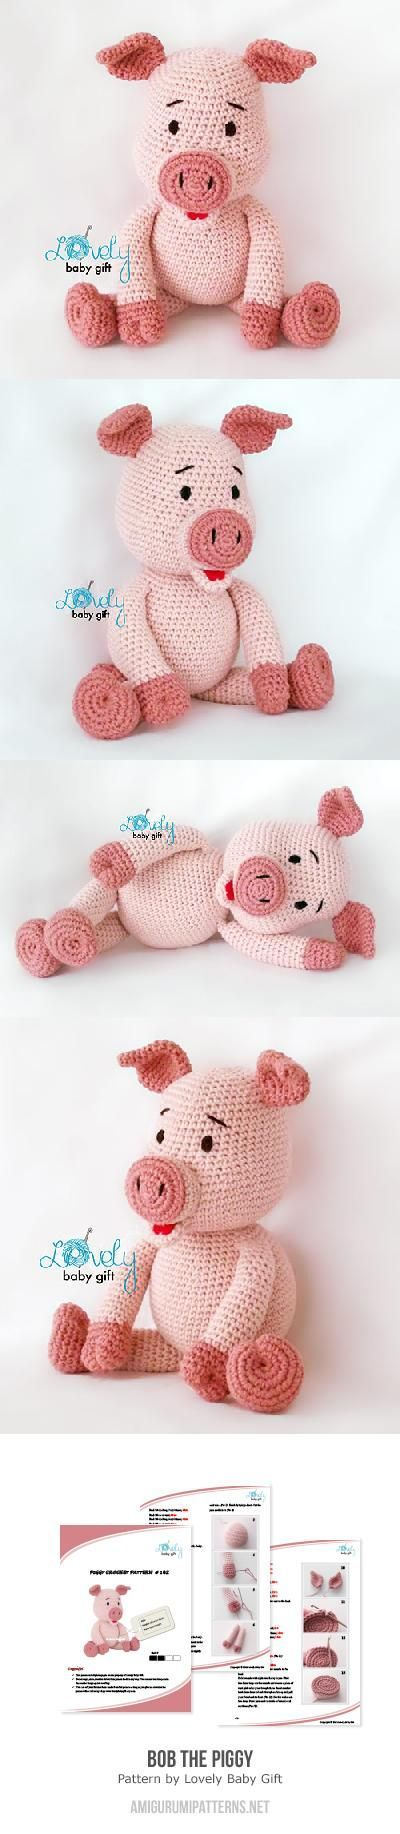 Crochet Pig Pattern The Cutest Collection Ever! | The WHOot